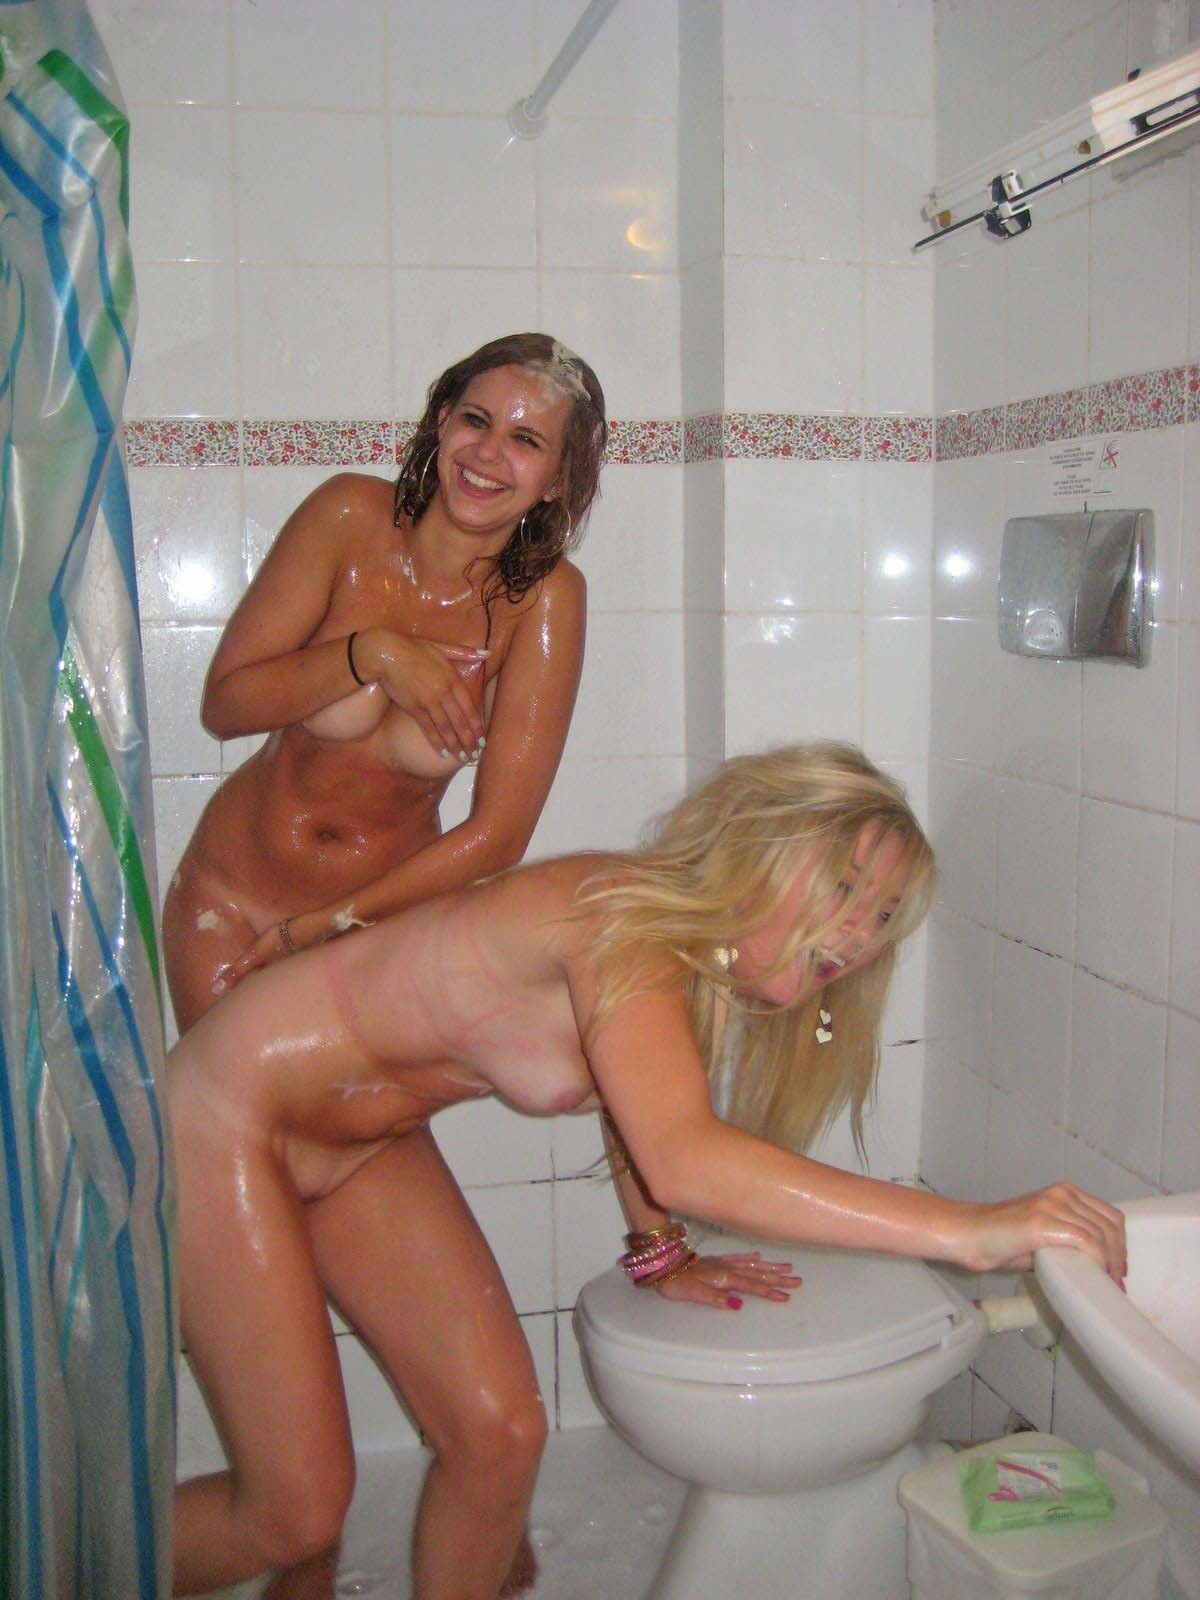 Shower caught nude in